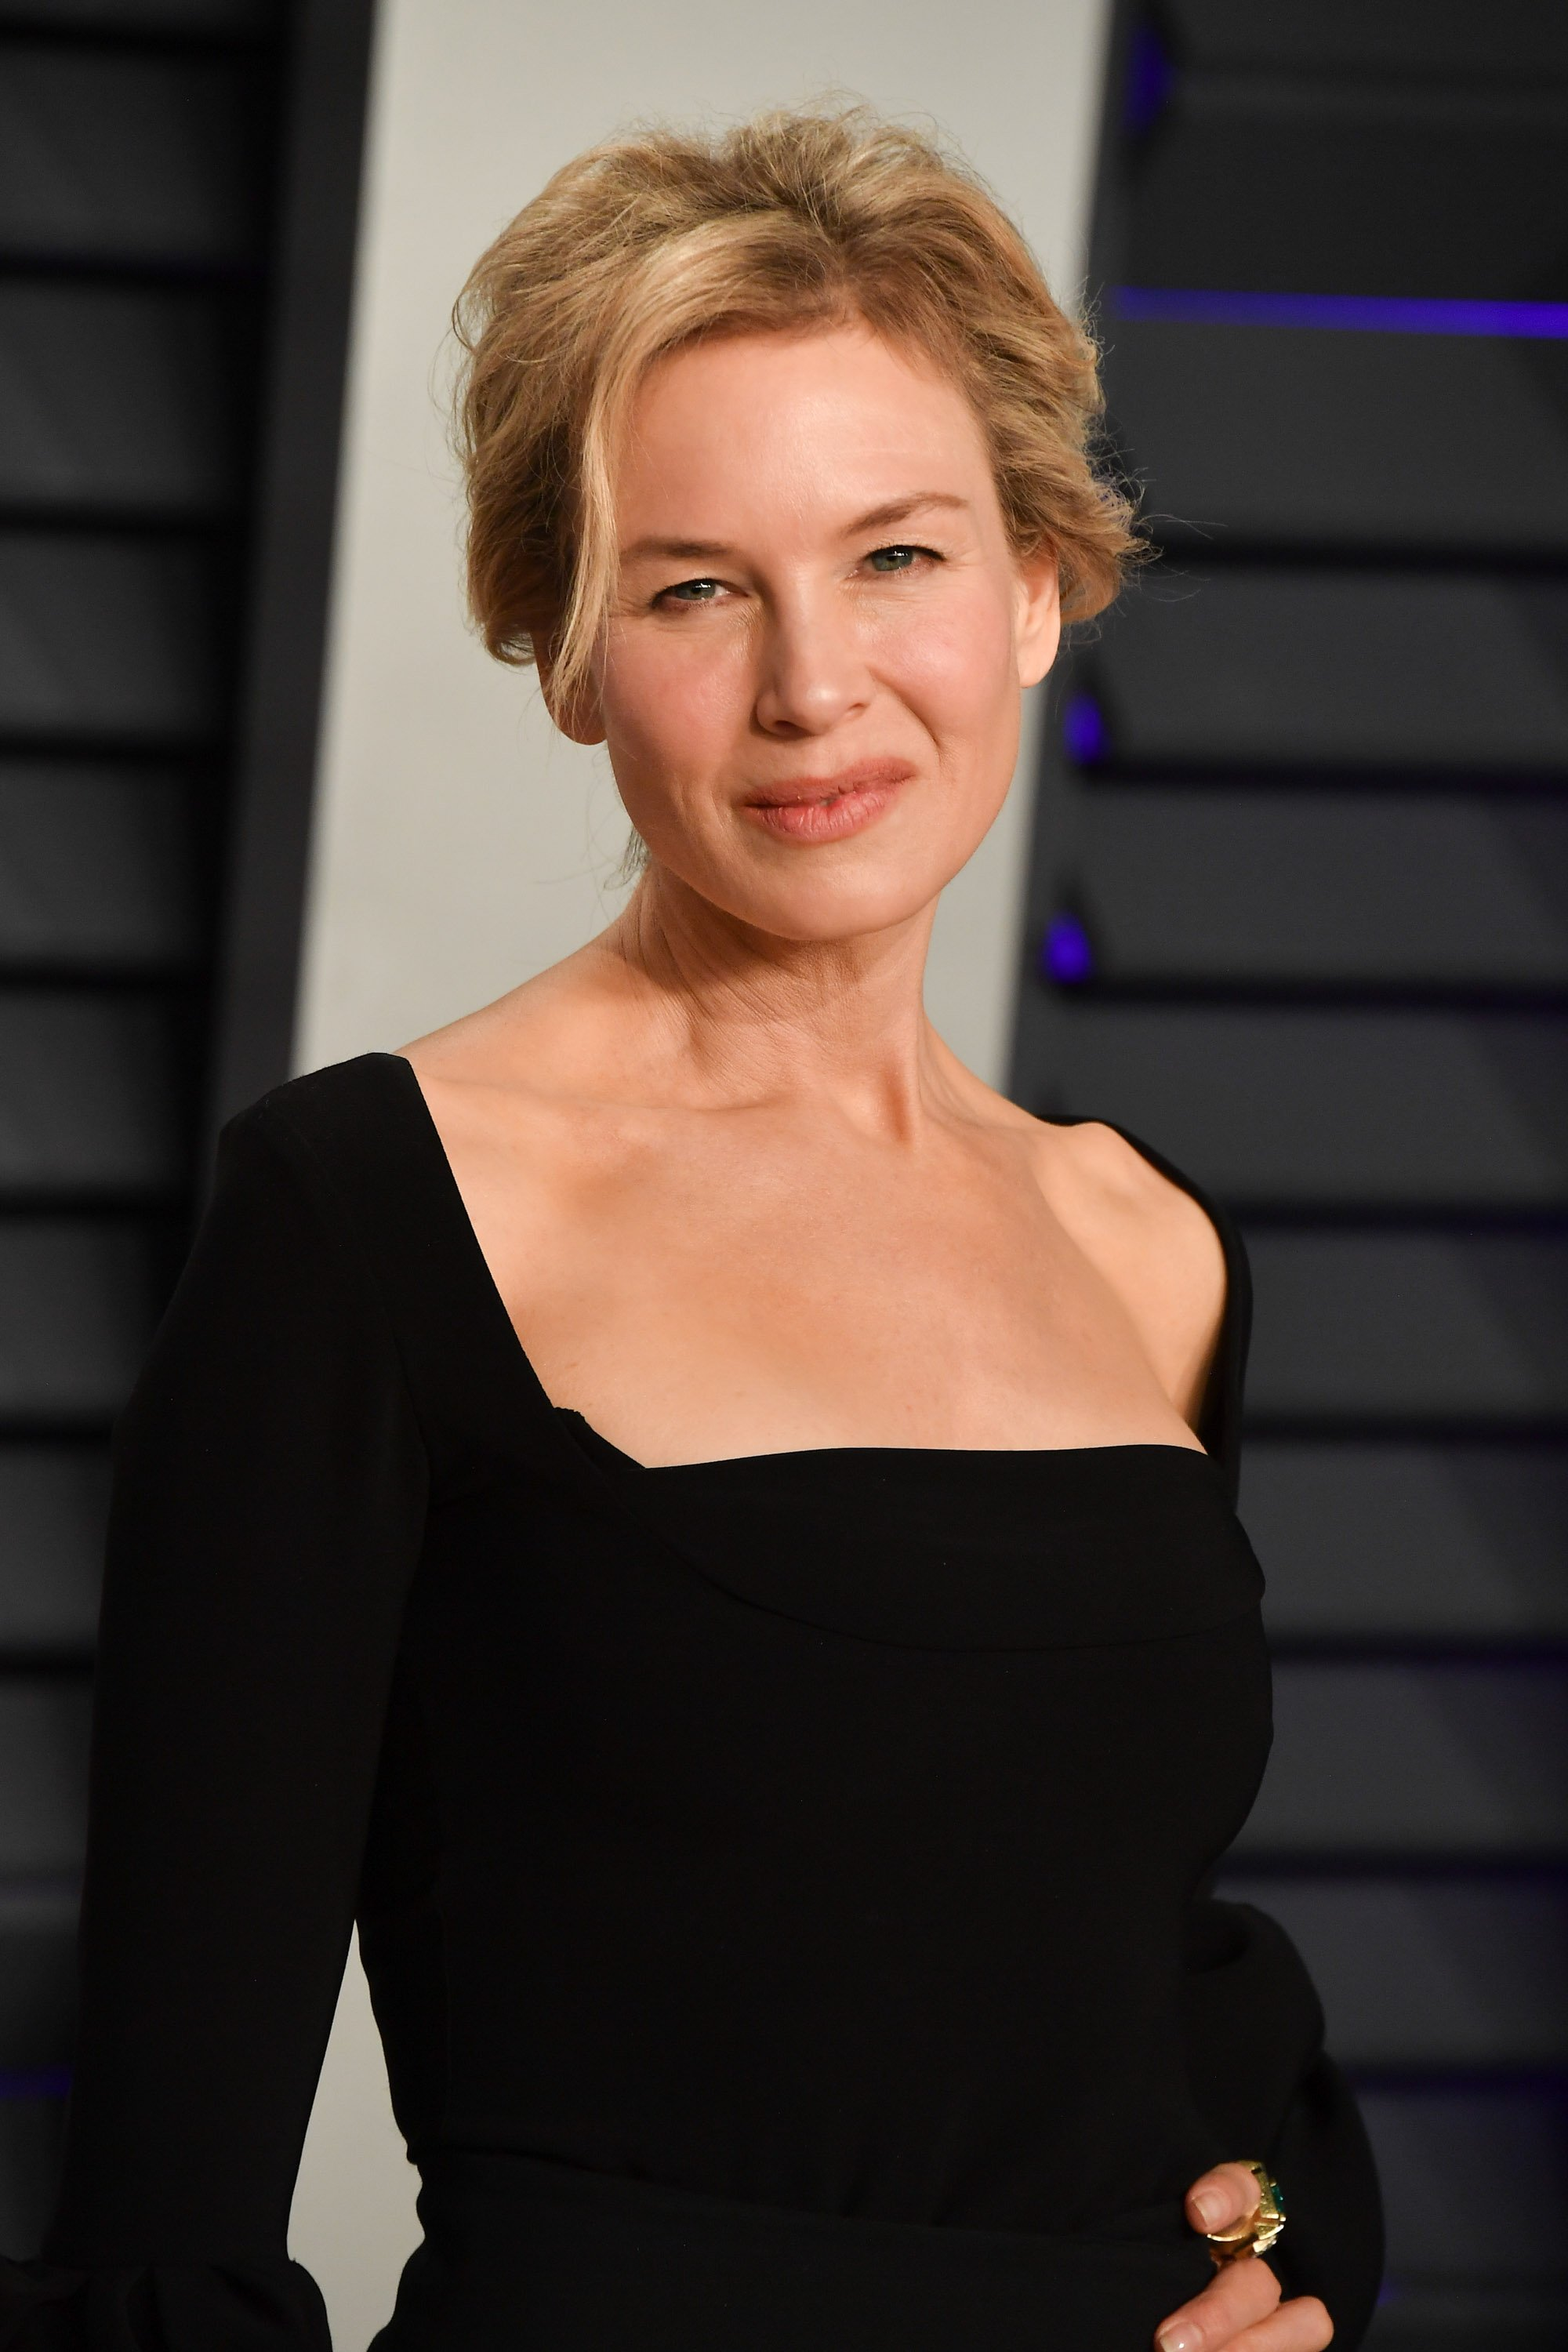 Renee Zellweger attends the 2019 Vanity Fair Oscar Party hosted by Radhika Jones at Wallis Annenberg Center for the Performing Arts on February 24, 201,9 in Beverly Hills, California. | Source: Getty Images.